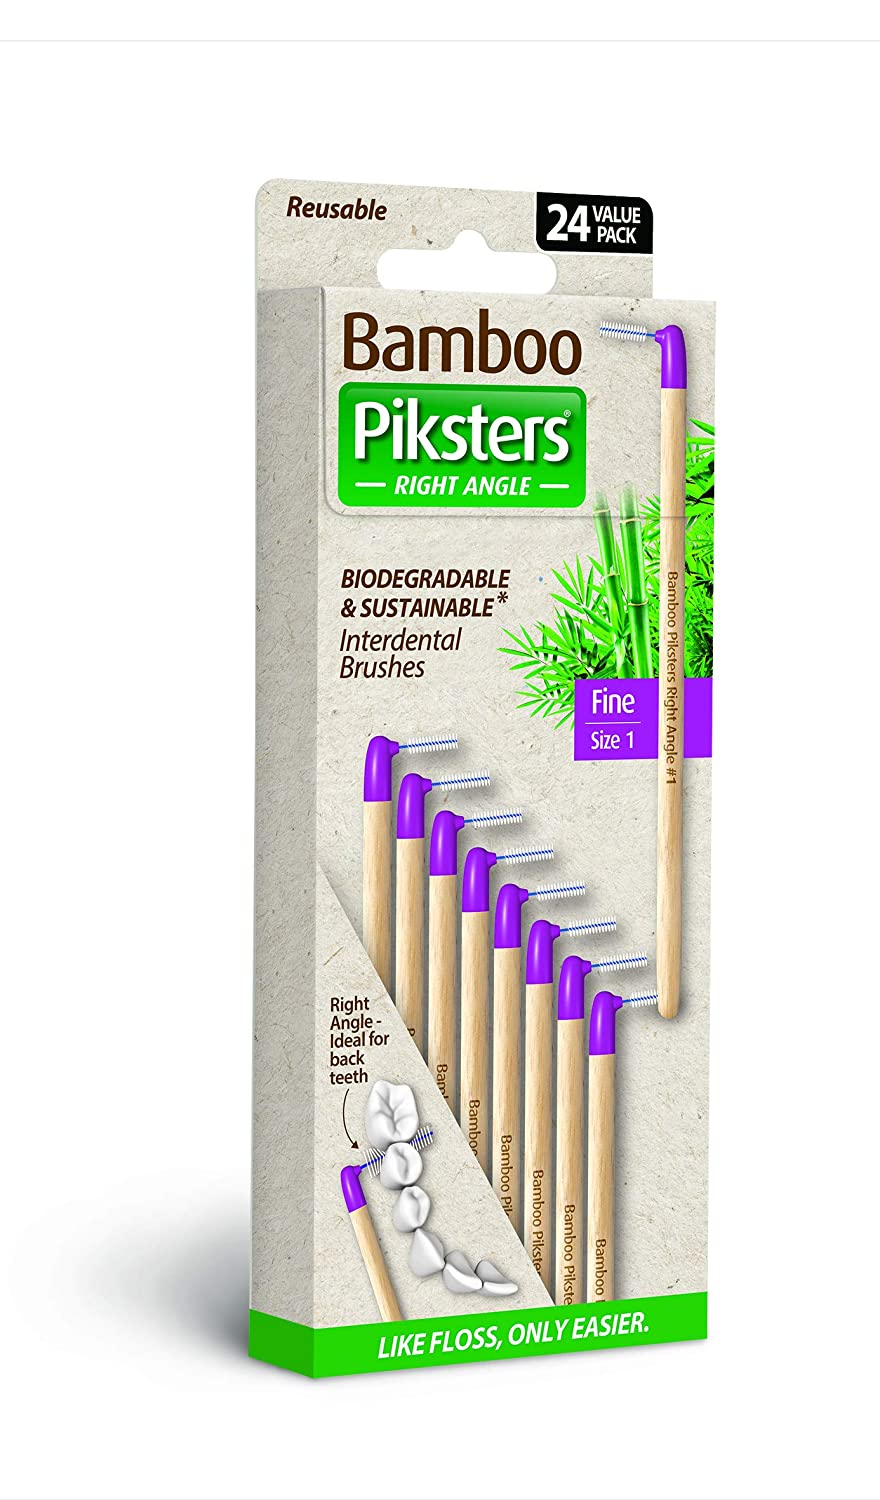 Bamboo Piksters Interdental Brushes | Sizes 00-5 | Right Angle Handle | 24 Pack (24 Pack, Size 1 (Purple))